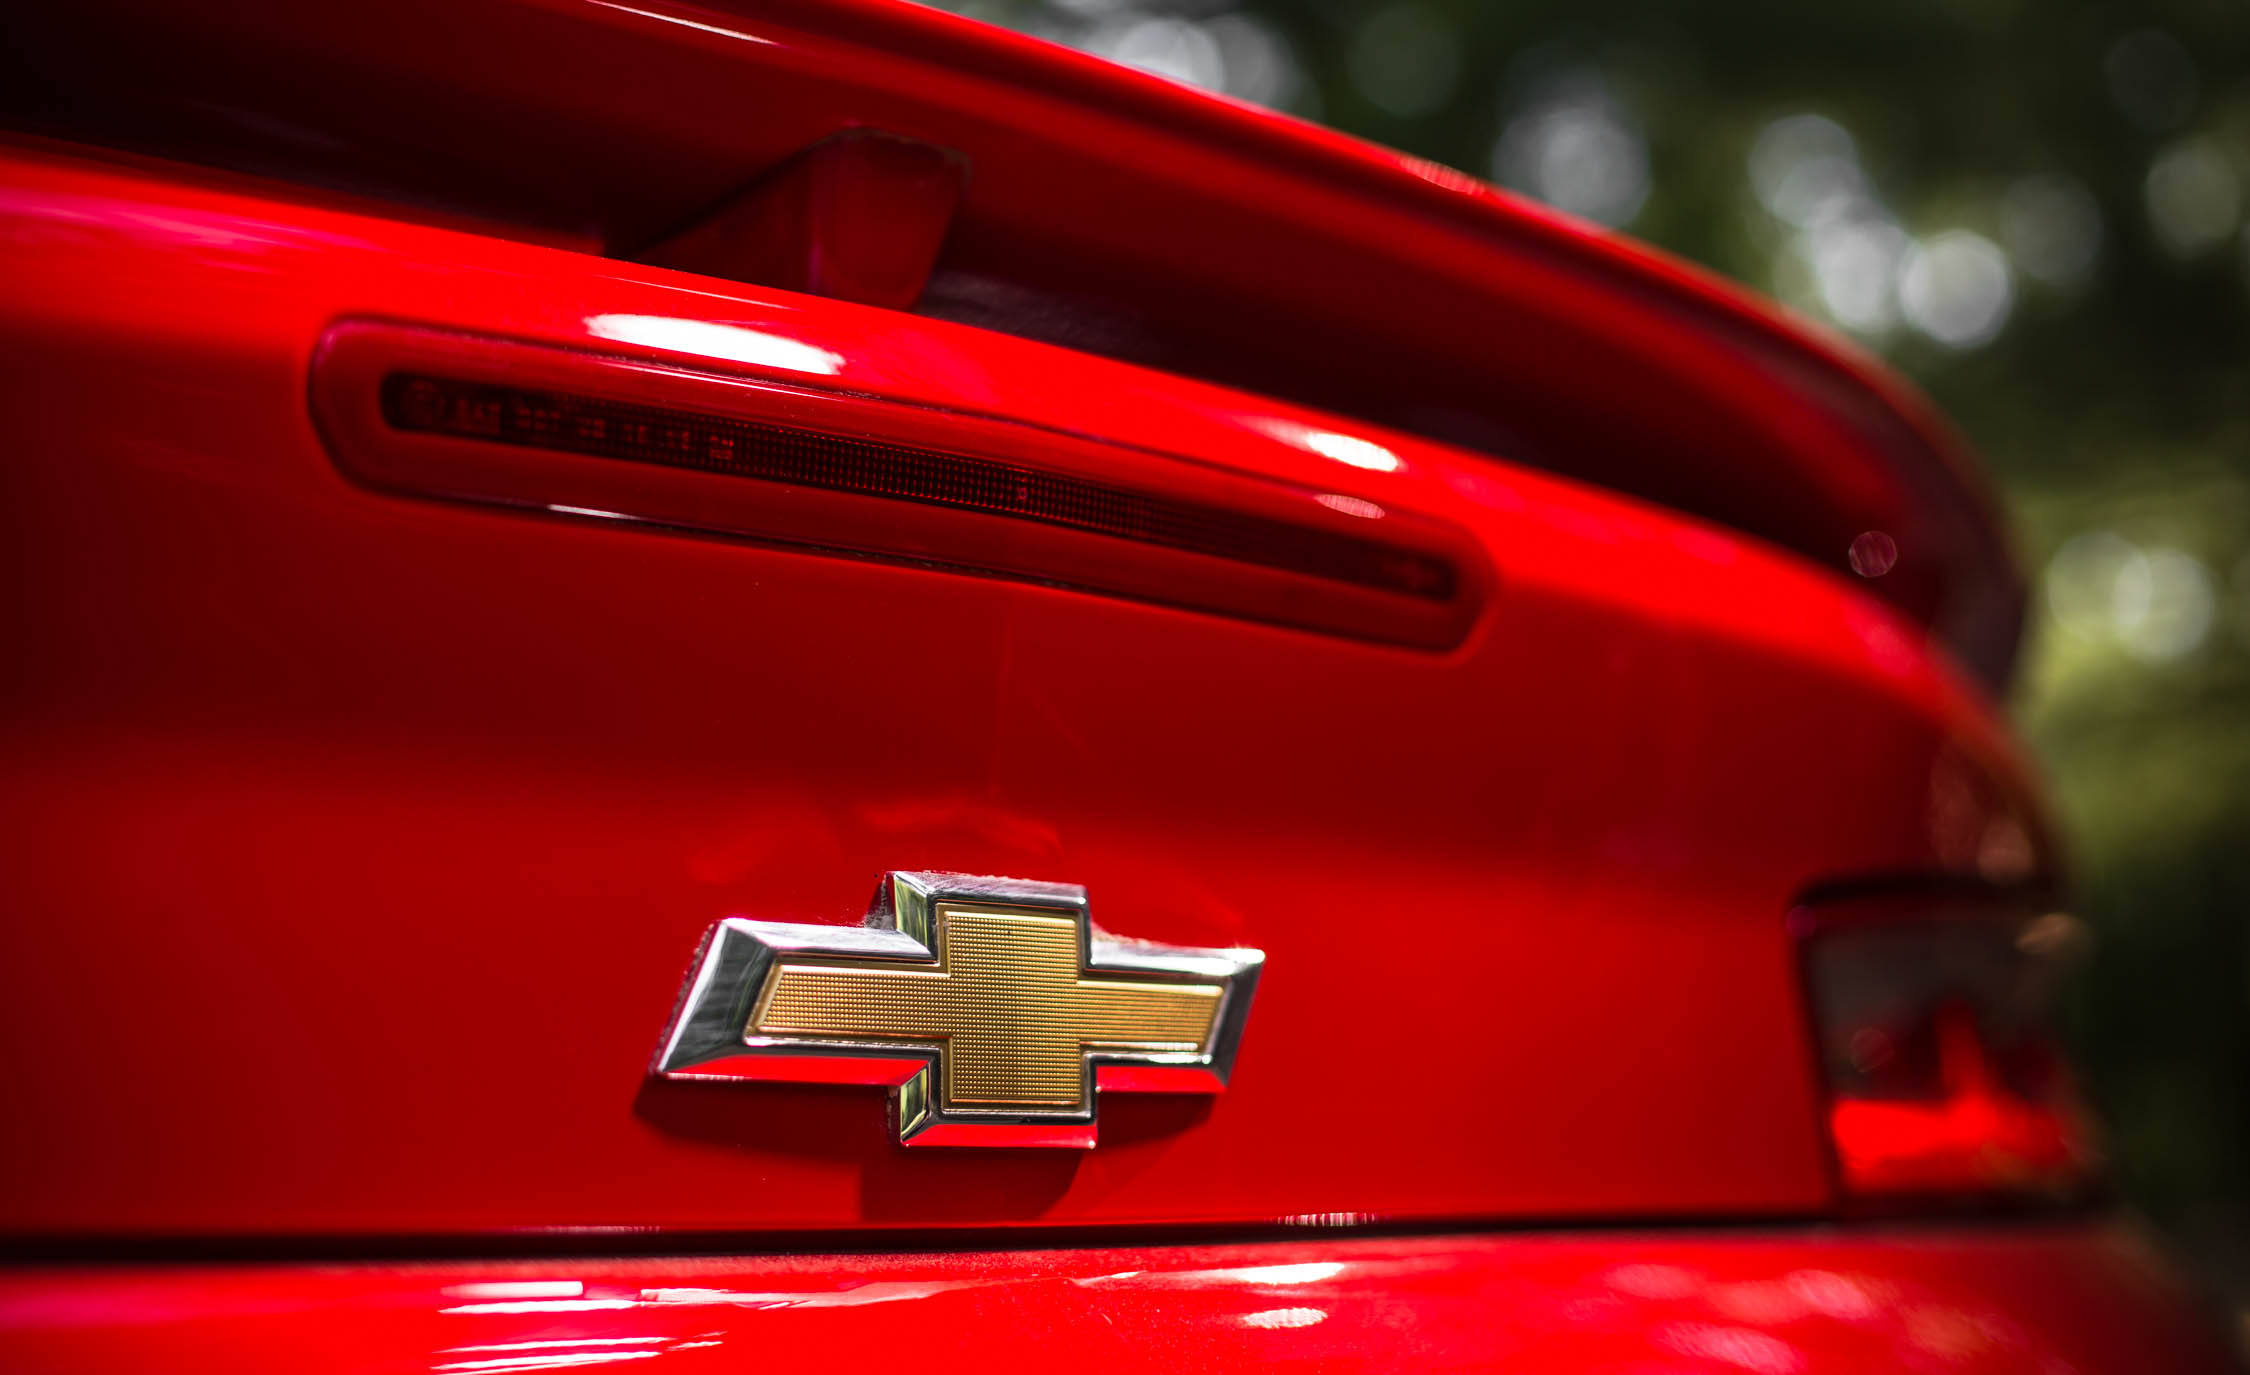 2016 Chevrolet Camaro SS Exterior Rear Badge